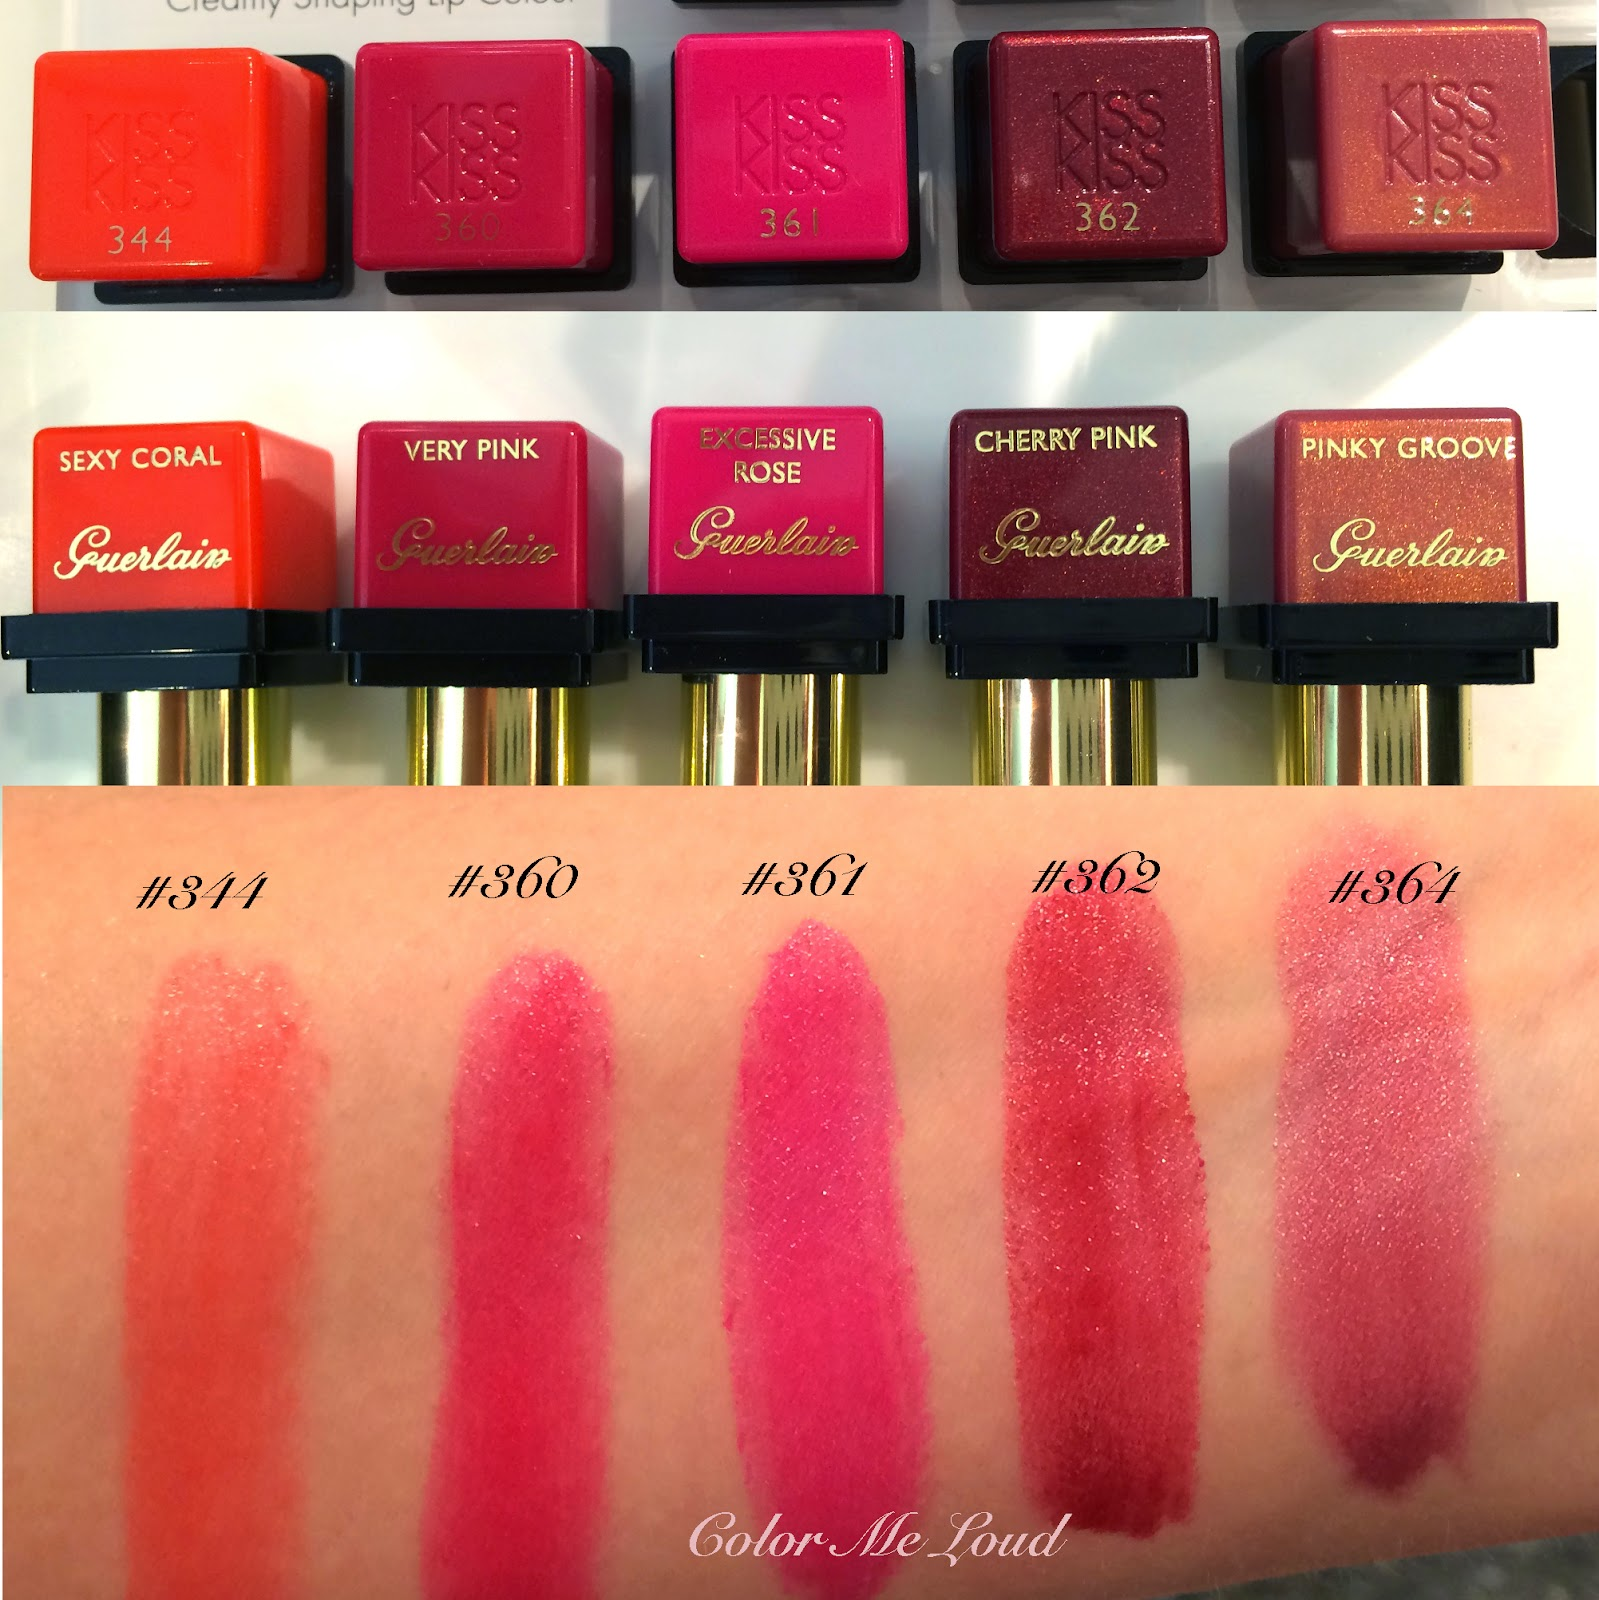 guerlain kiss kiss lipsticks swatches of all the shades color me loud